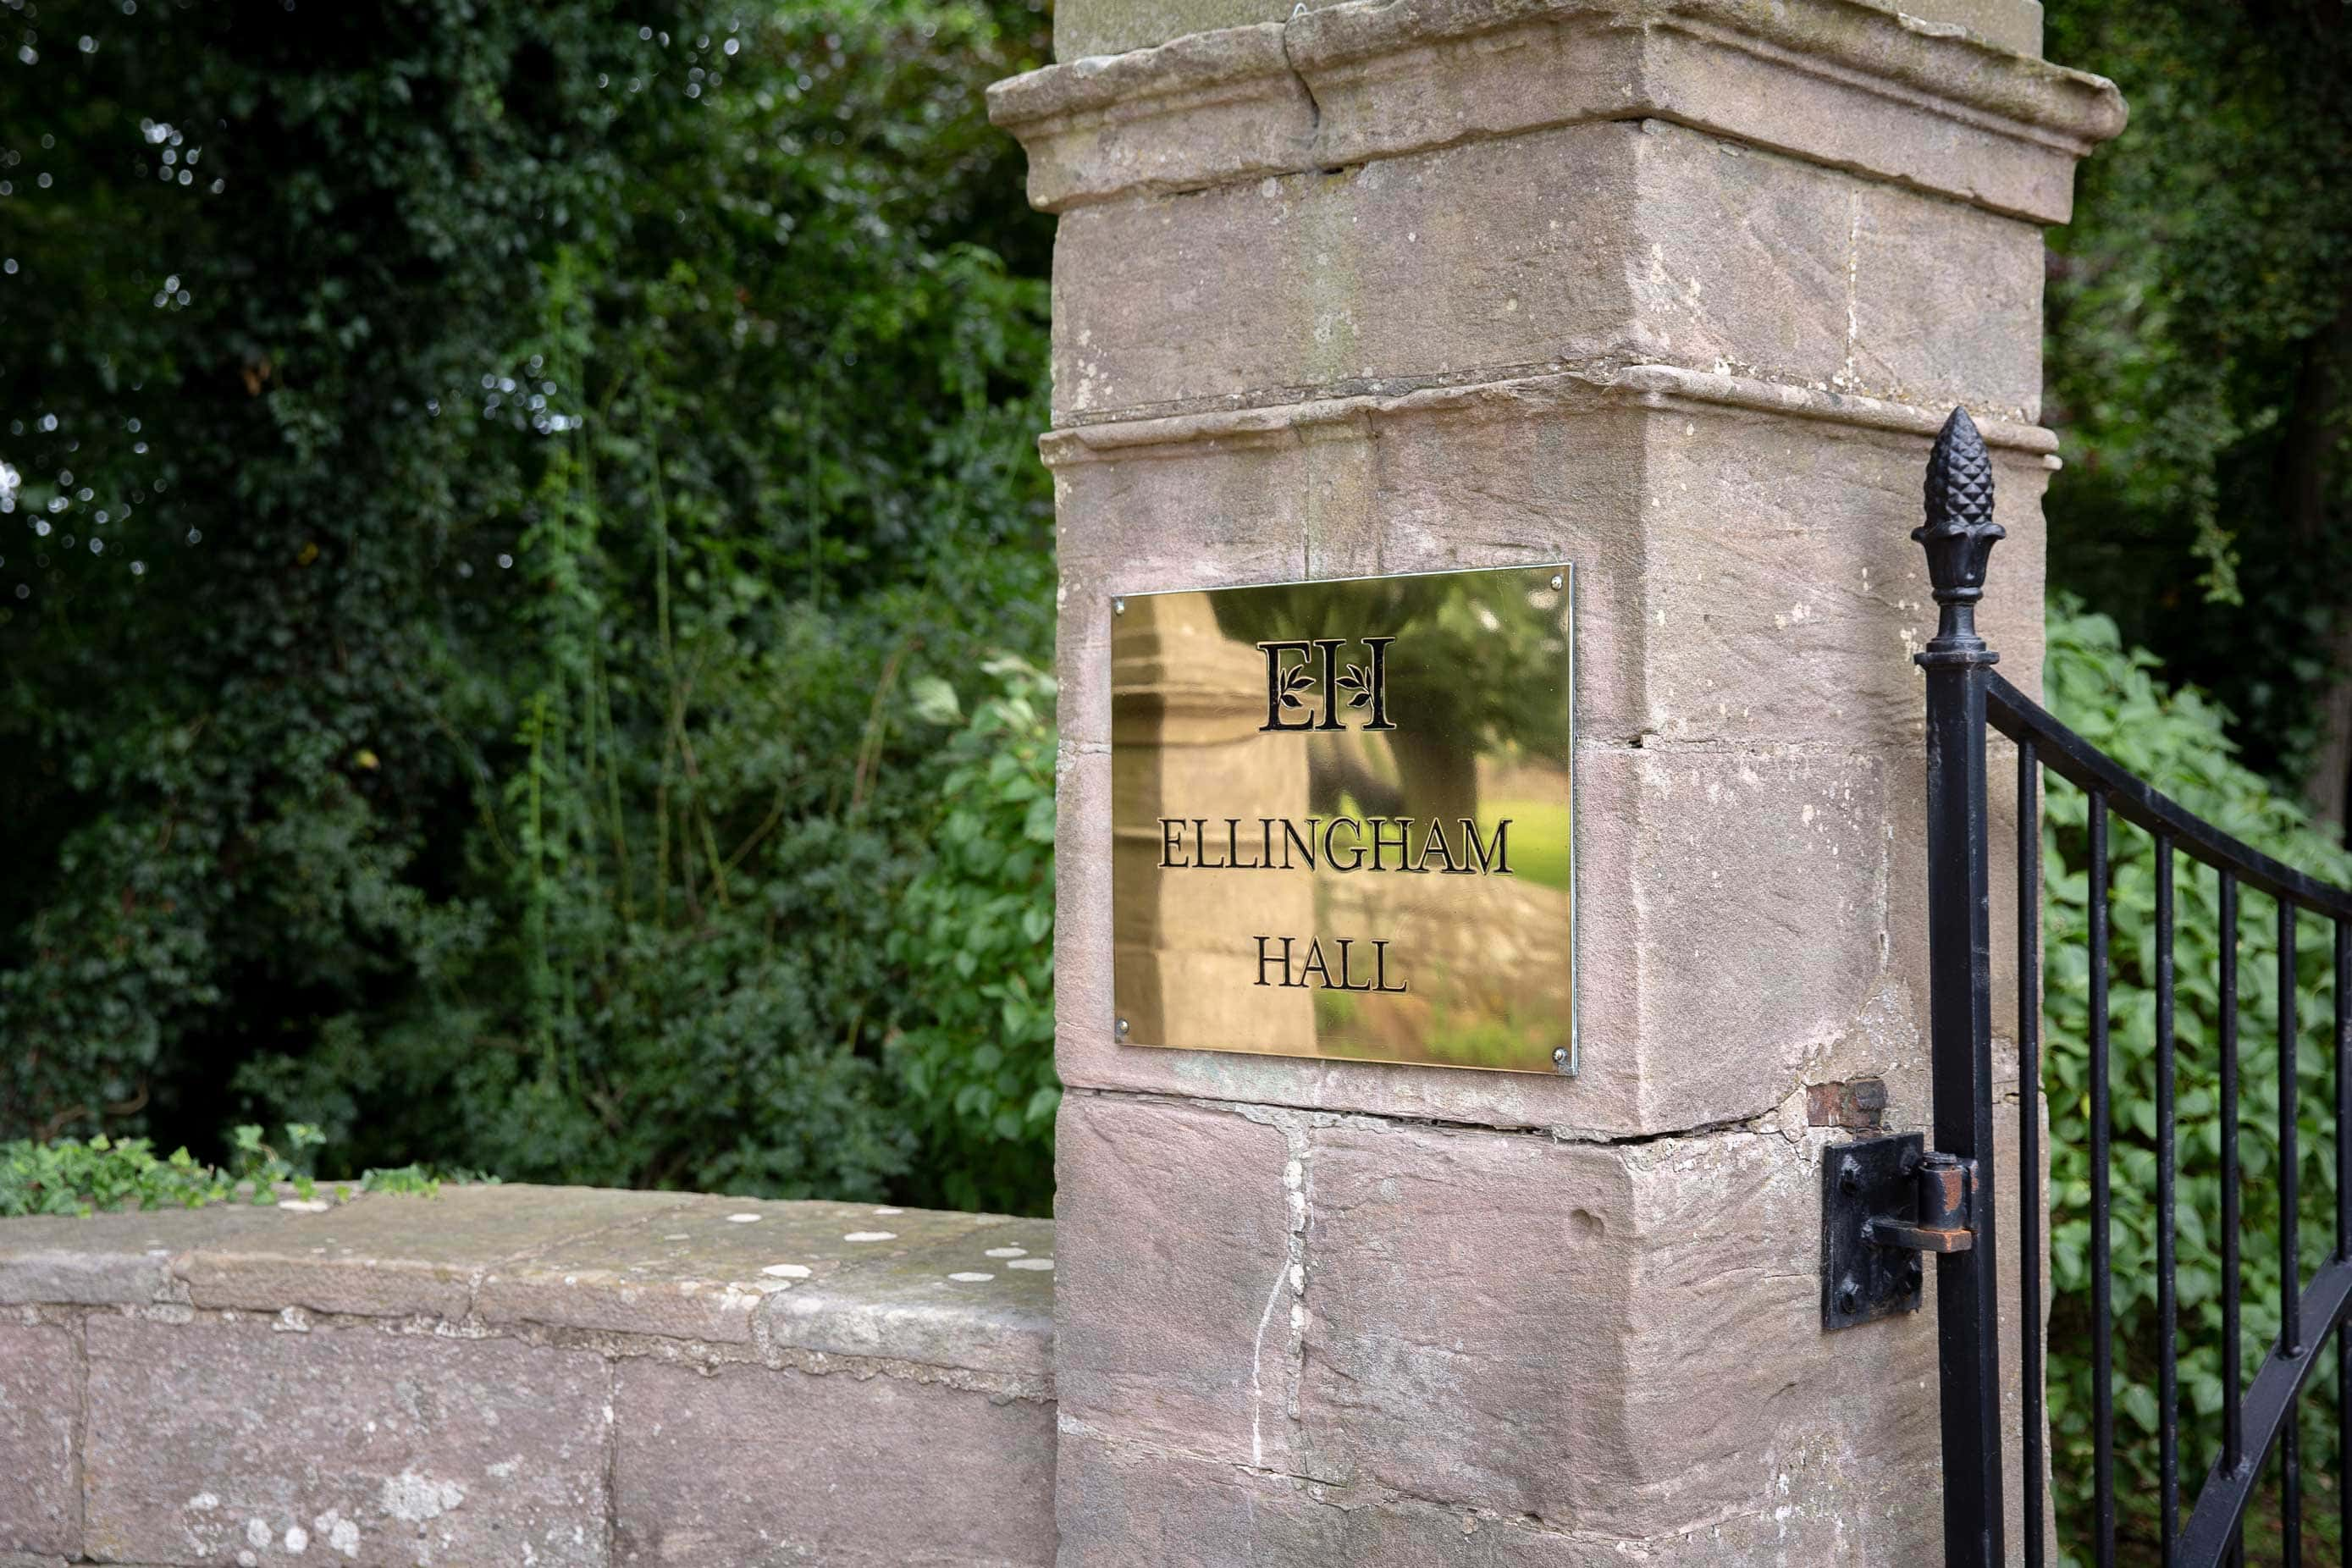 Photo of Ellingham Hall sign